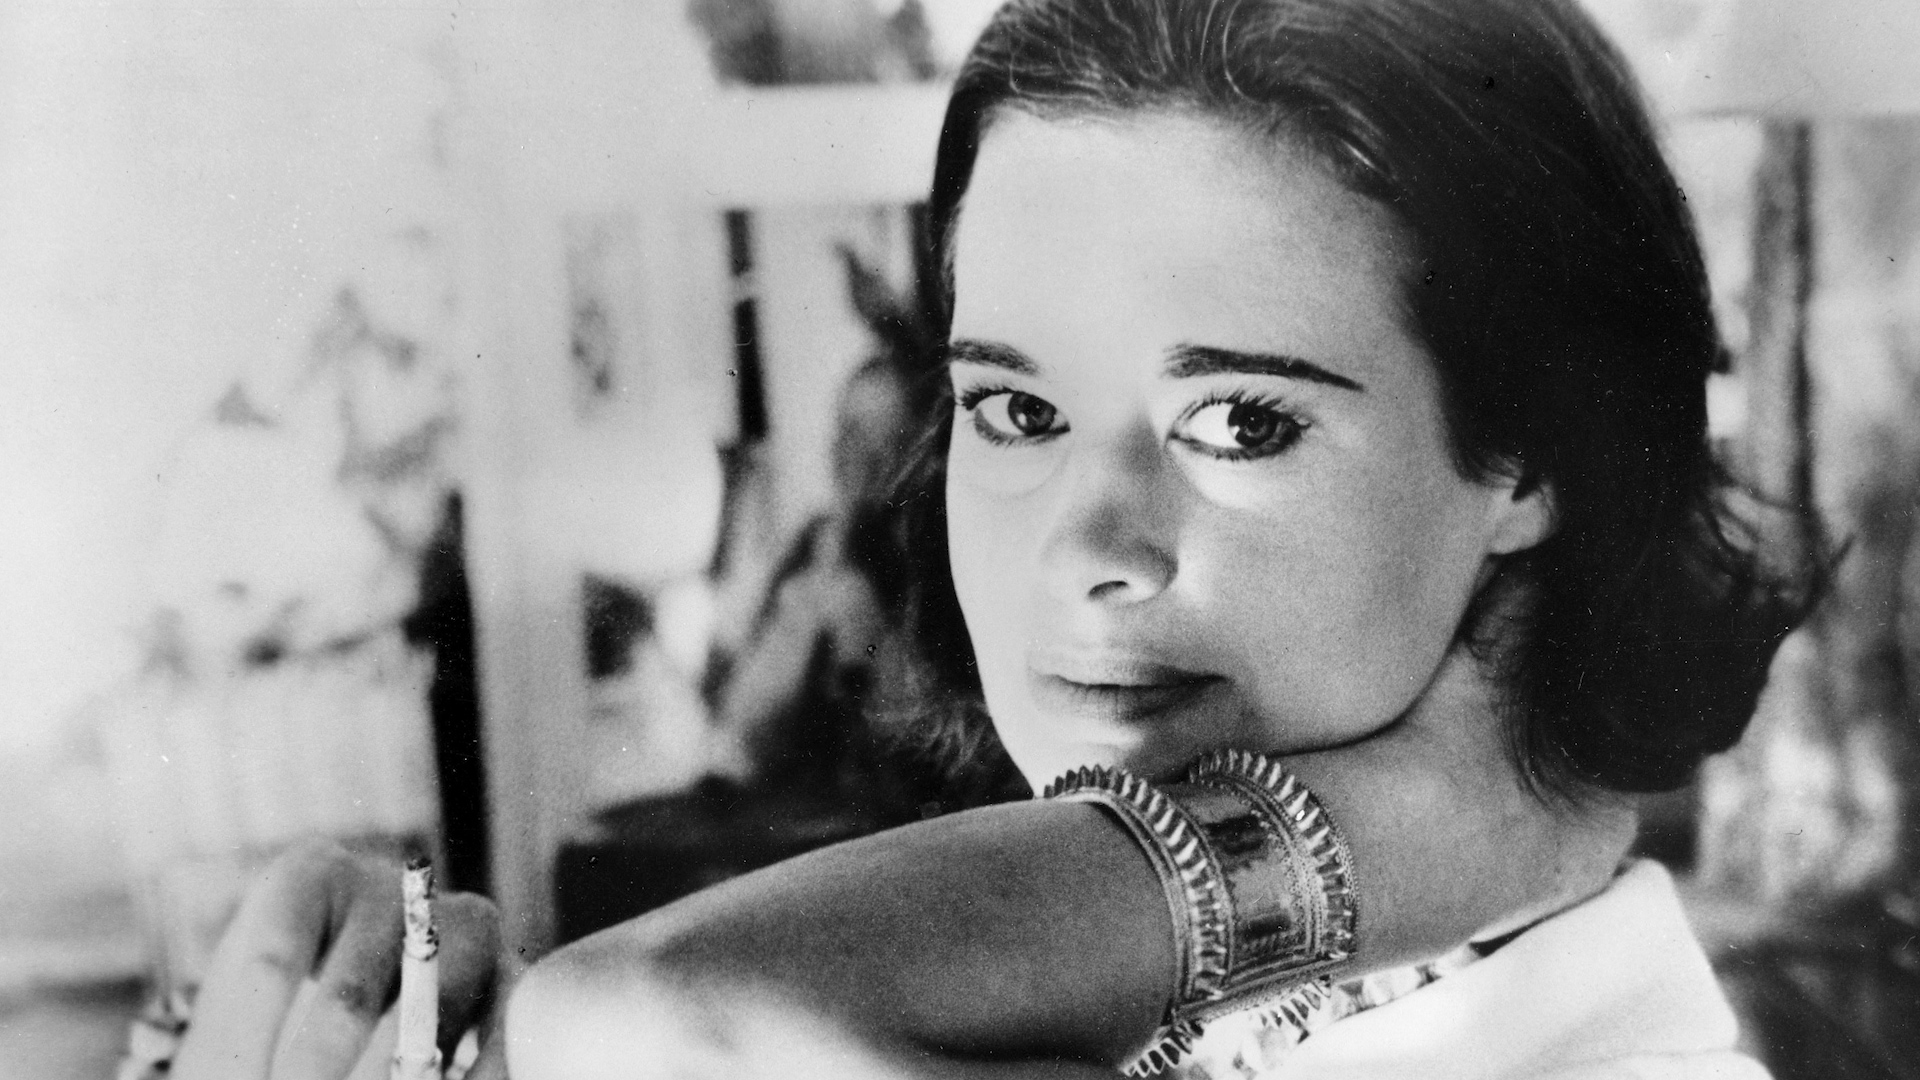 Gloria Vanderbilt, socialite and designer-jeans marketer who was the subject of a sensational custody trial in the 1930s, dies at 95